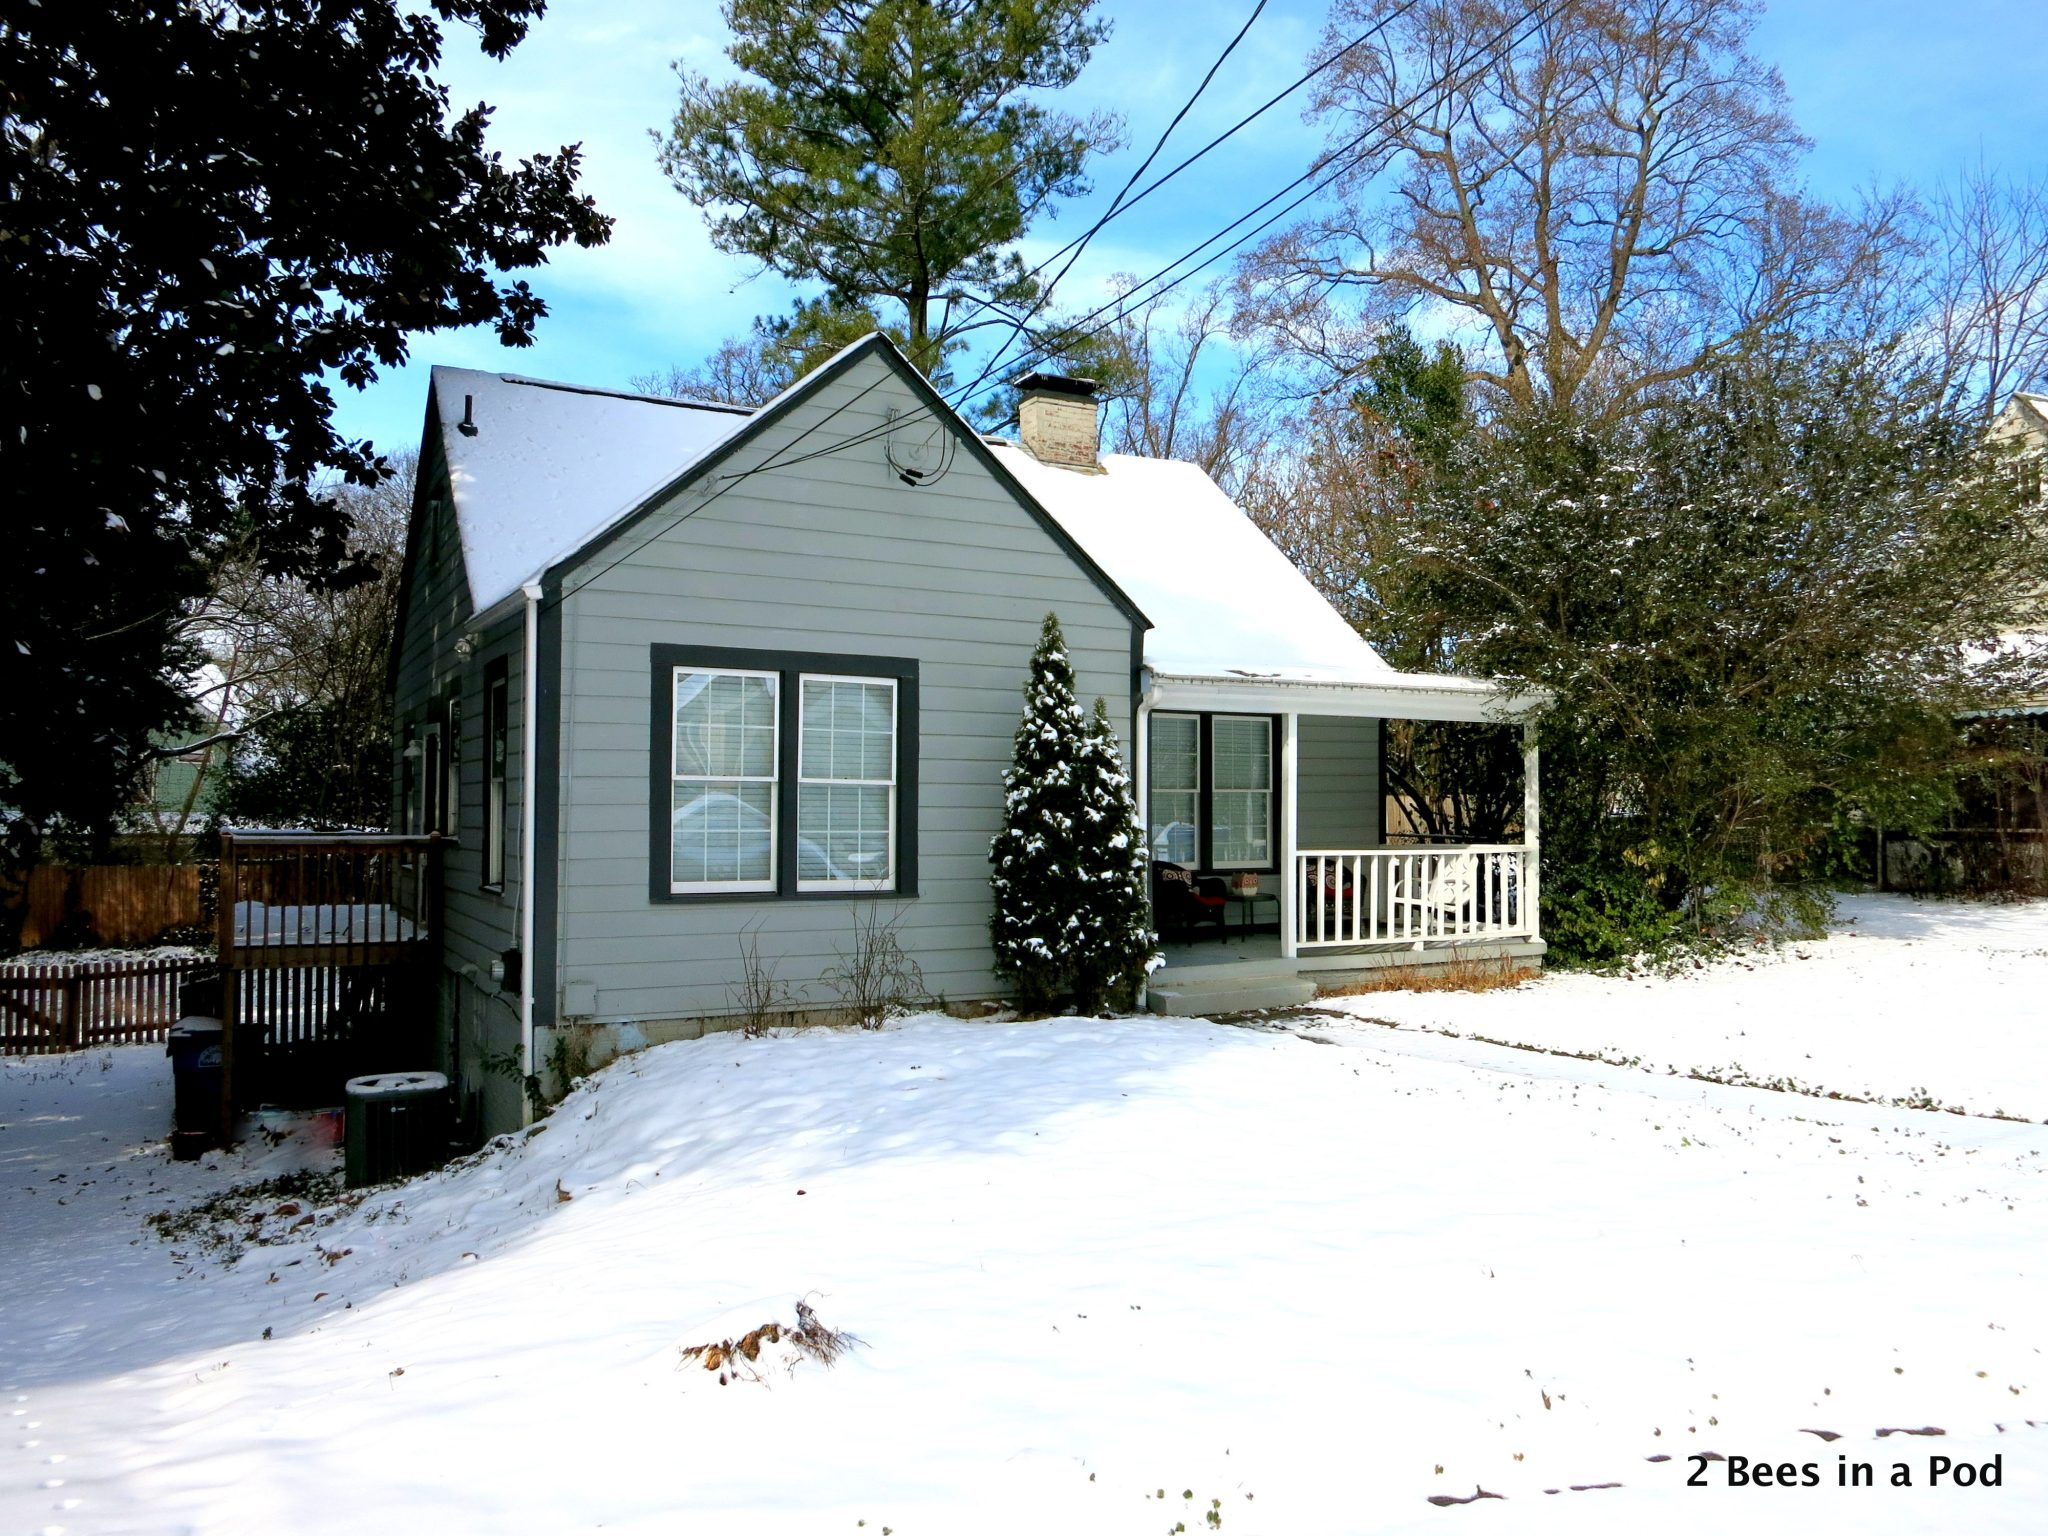 Cute Cottage in Atlanta in the snow